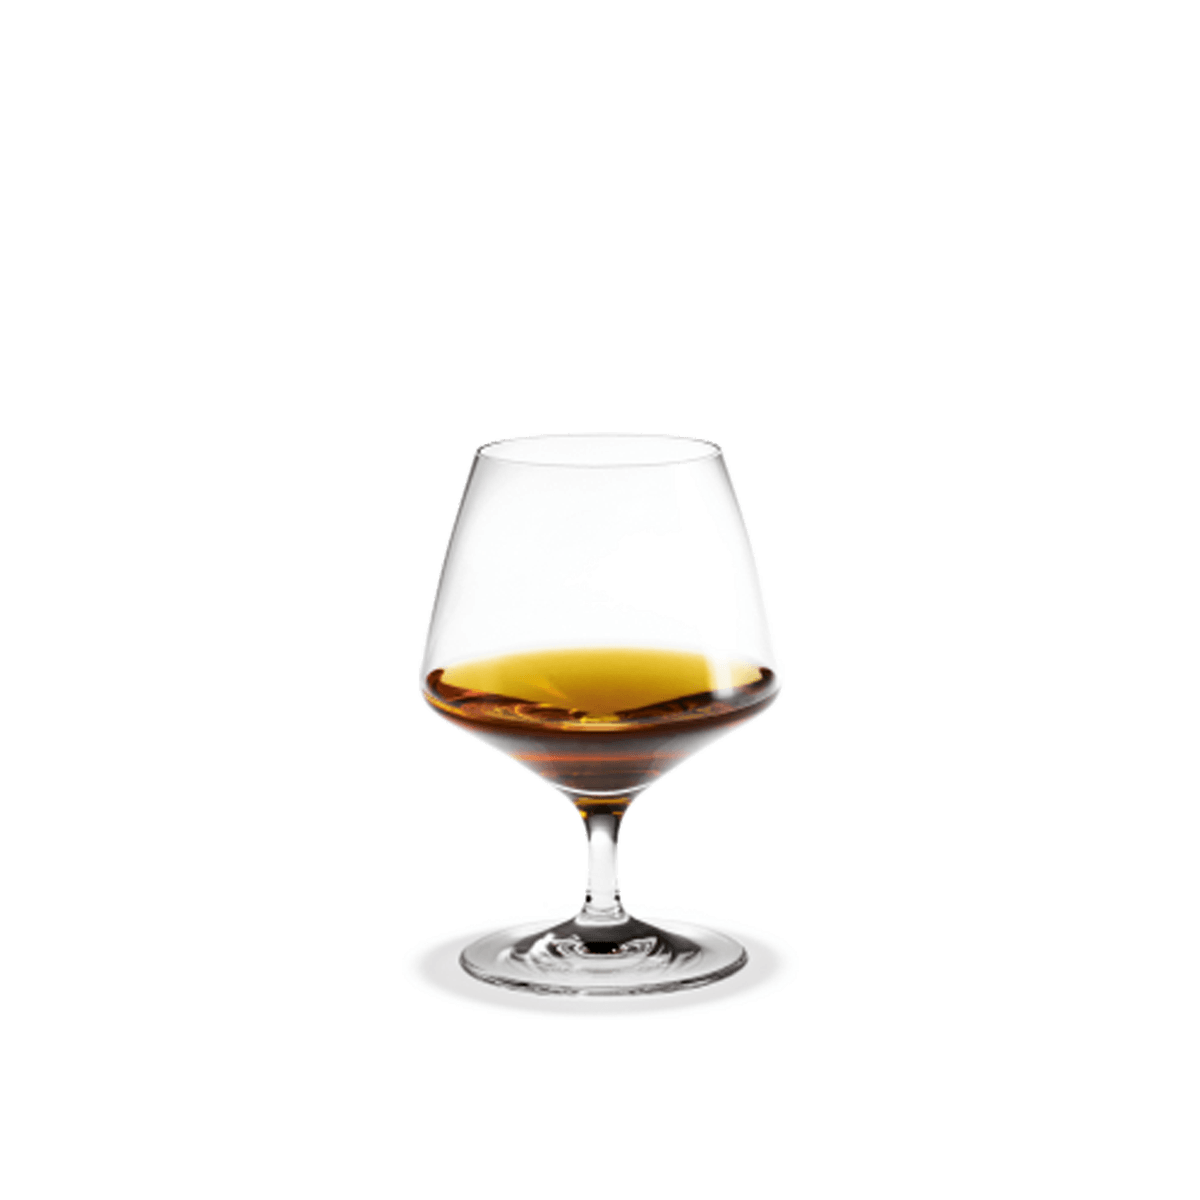 Brandy glass png. Perfection danish design from